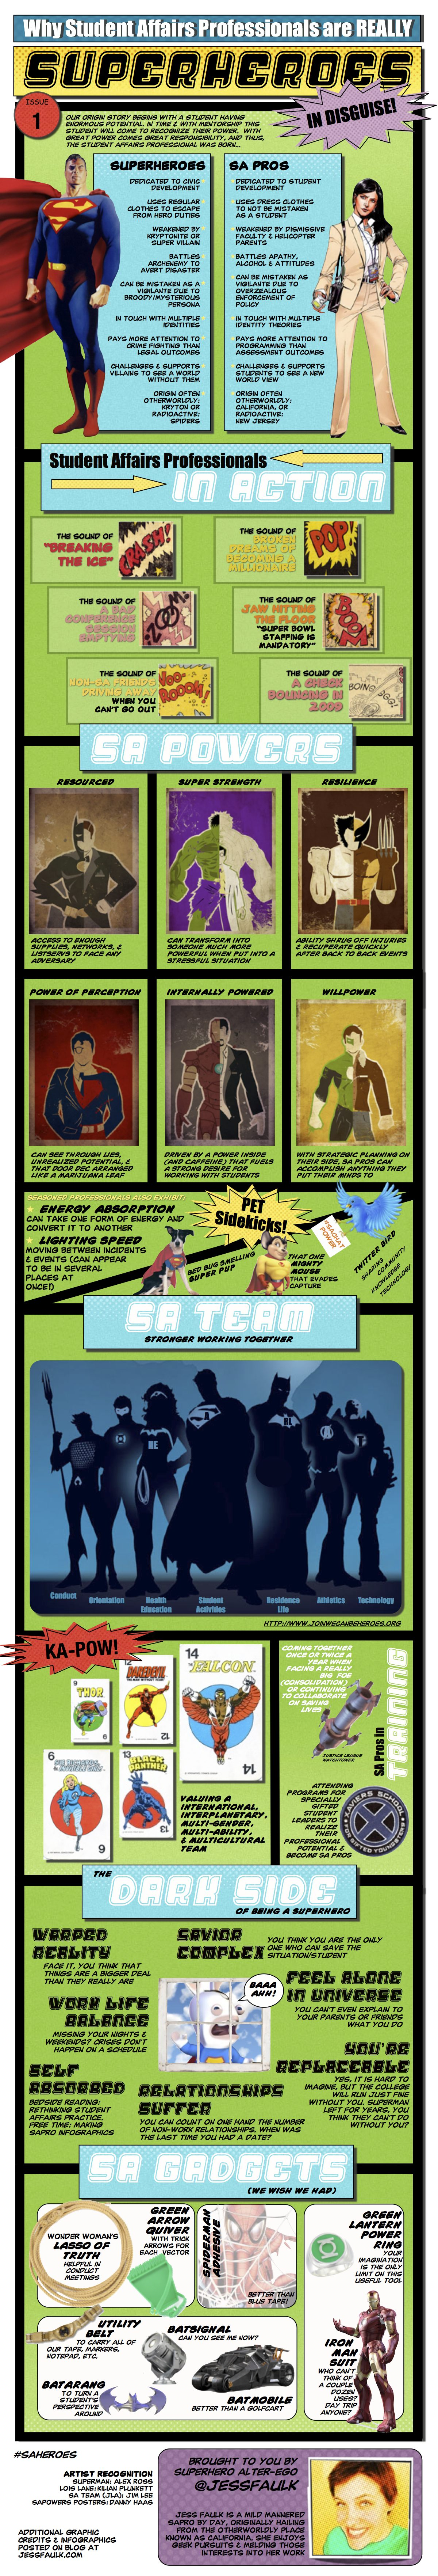 The Student Affairs Superheroes